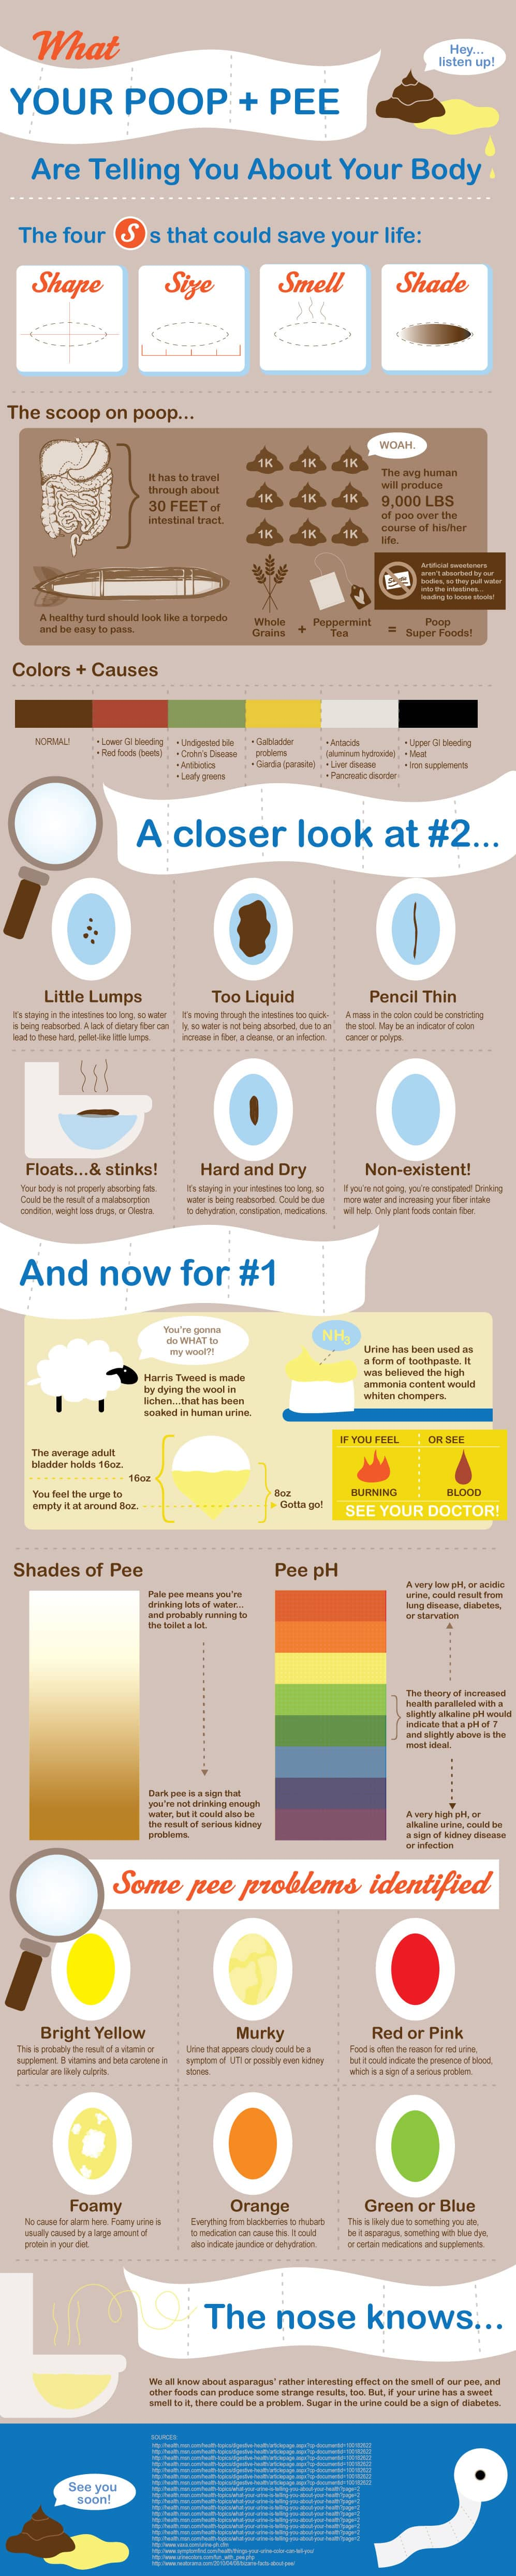 What Your Poop (and Pee) Tells About Your Body (Infographic)